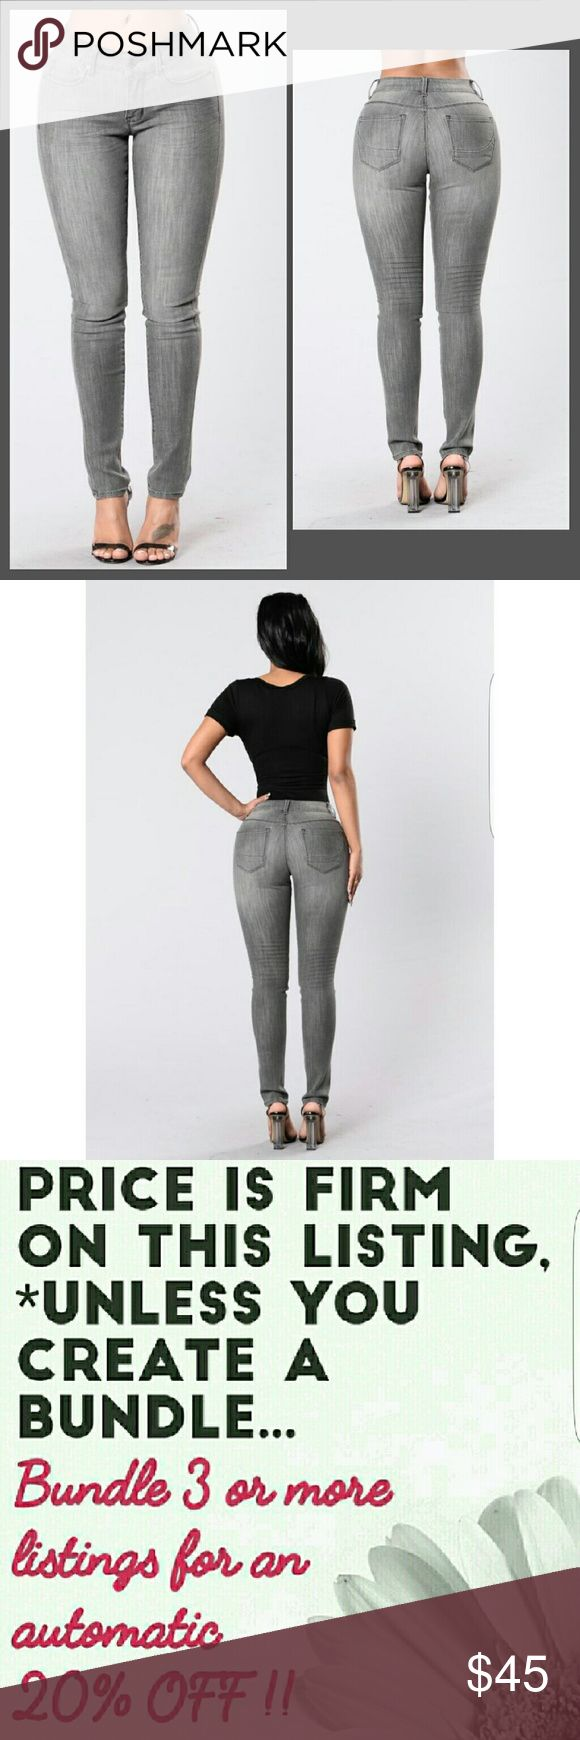 """Brand New, Gorgeous Grey Jeans. Size; 7, 9, 11 Brand New.. These premium 5 pocket mid rise jeans hug everywhere! Curve contouring. The awesome stretch makes them just about """"feel like yoga pants""""!  Color; Grey.  Material; 77% Cotton, 8% Polyester, 13% Viscose, 2% Spandex.  Sizes; 7, 9, 11. Ladi Lyke Jeans Straight Leg"""